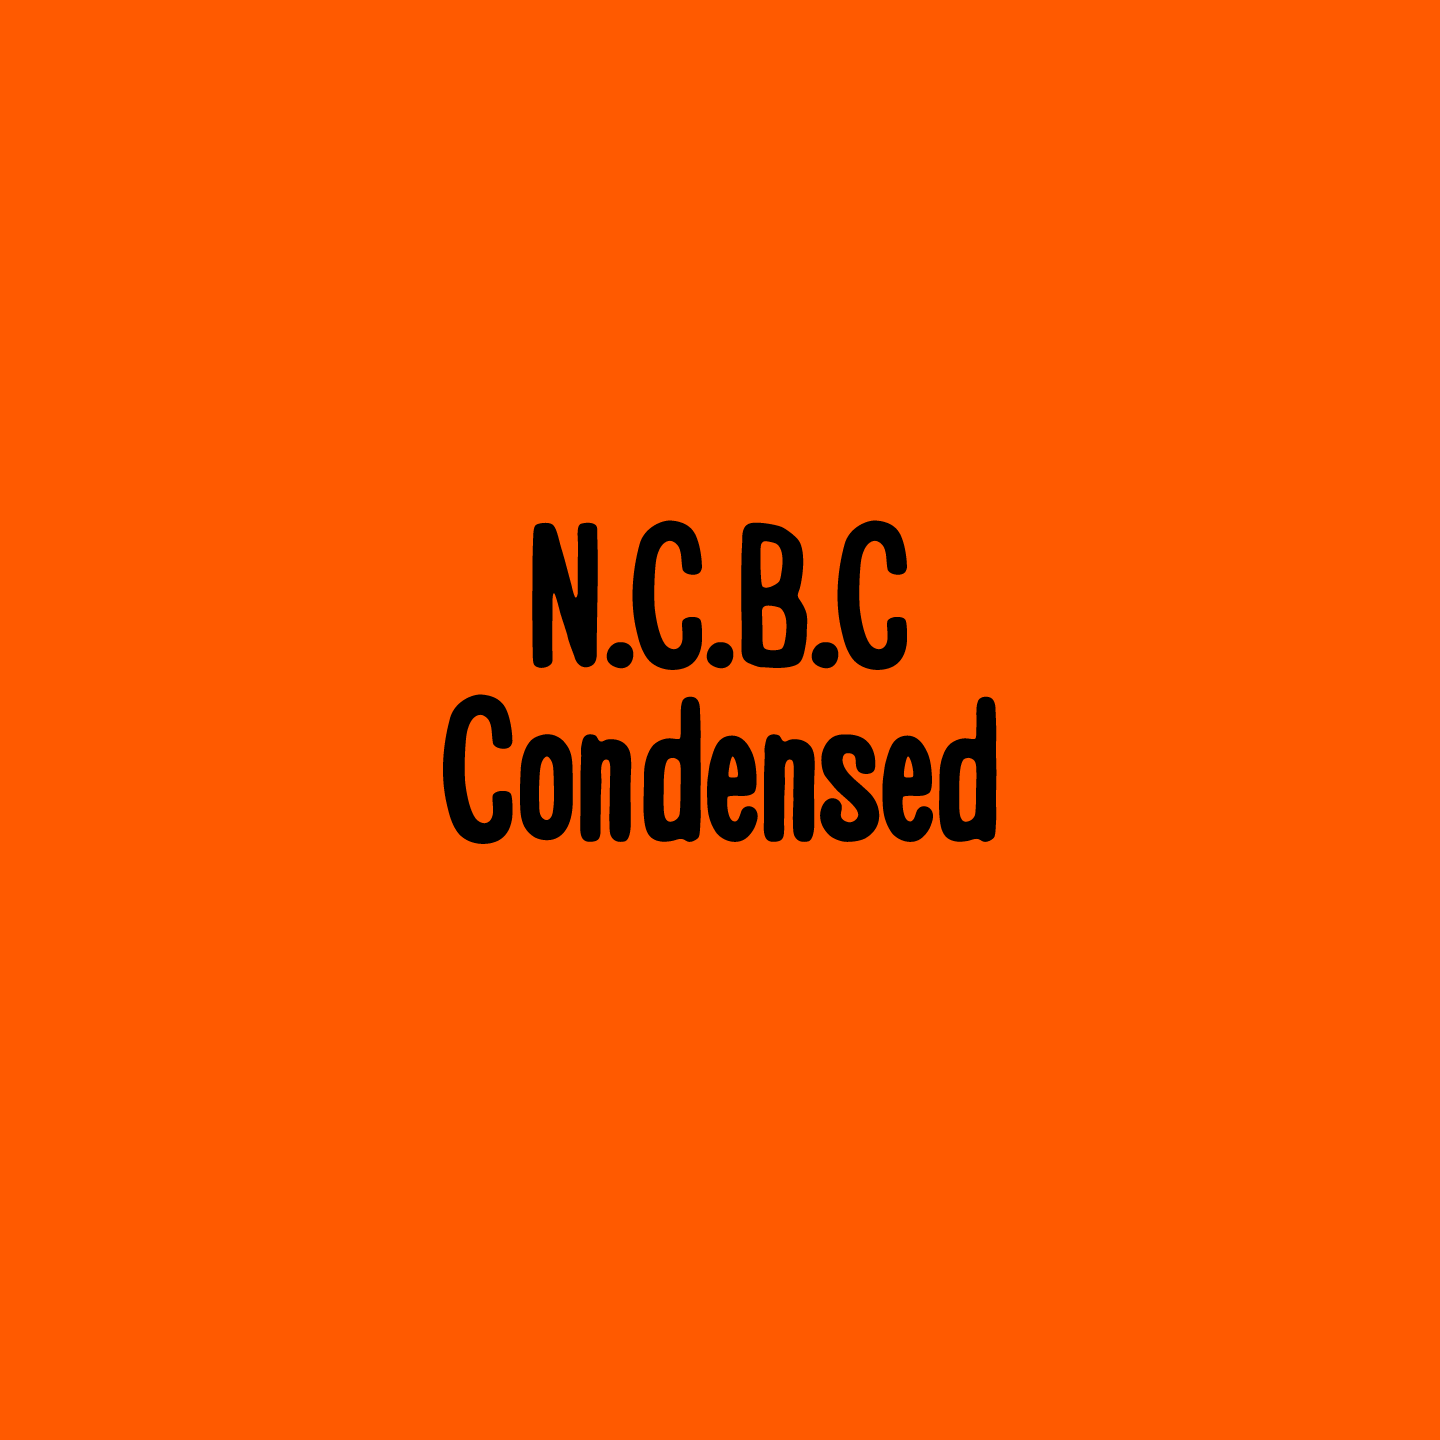 NCBC-Condensed-PageIcon.png